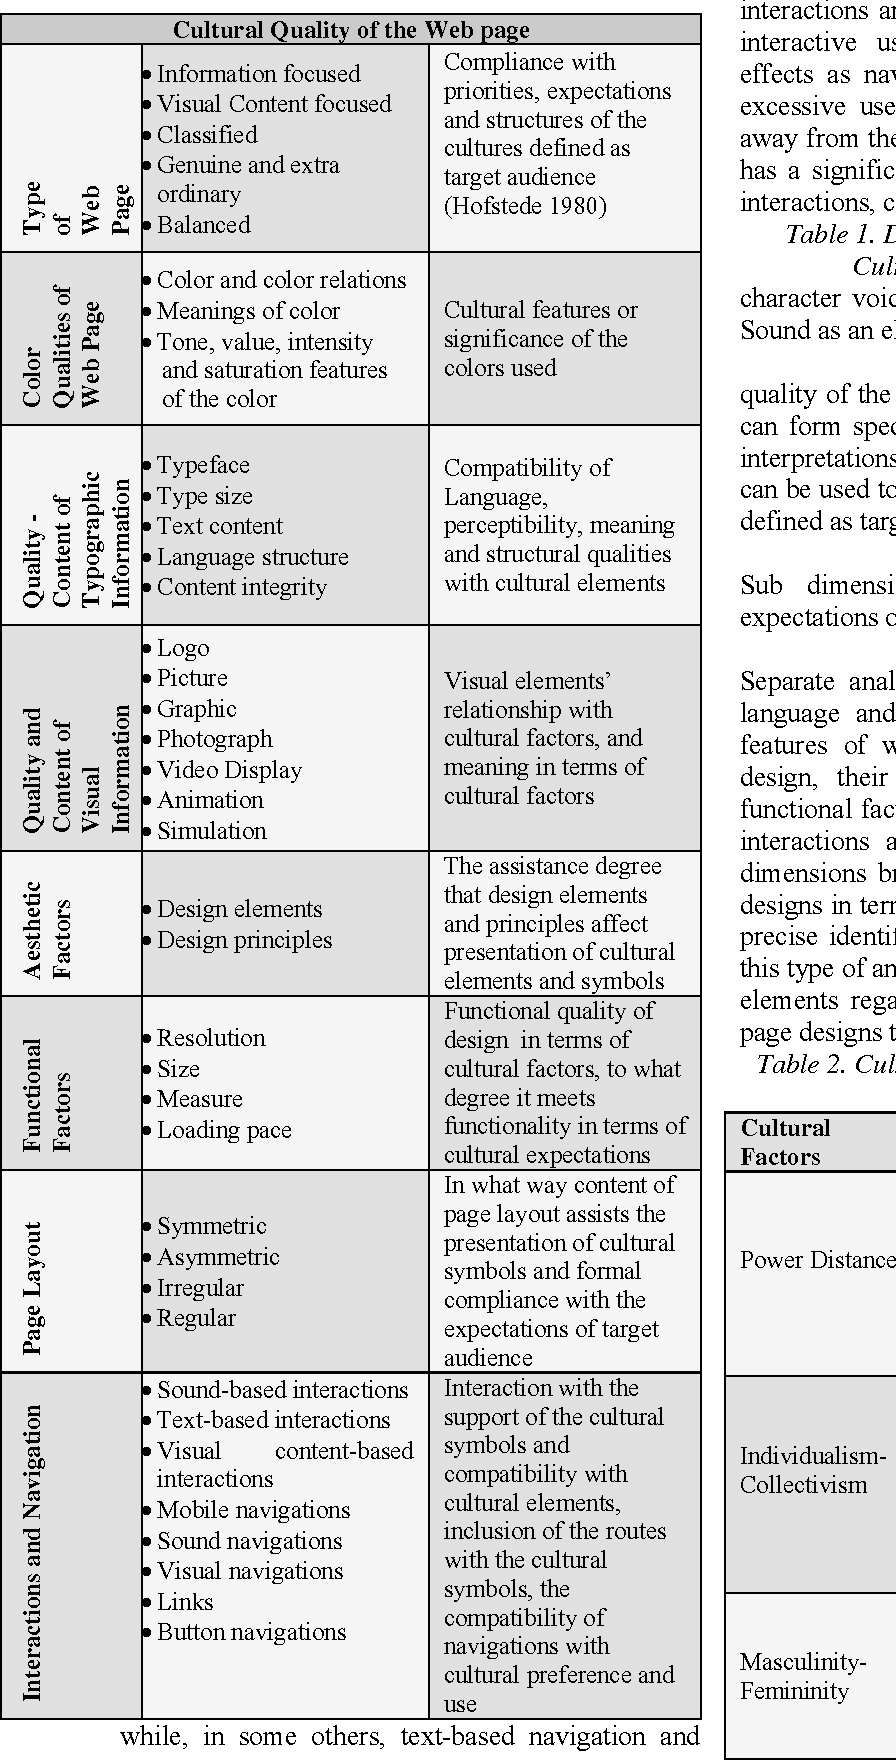 Cultural Factors And Their Components Hofstede 1980